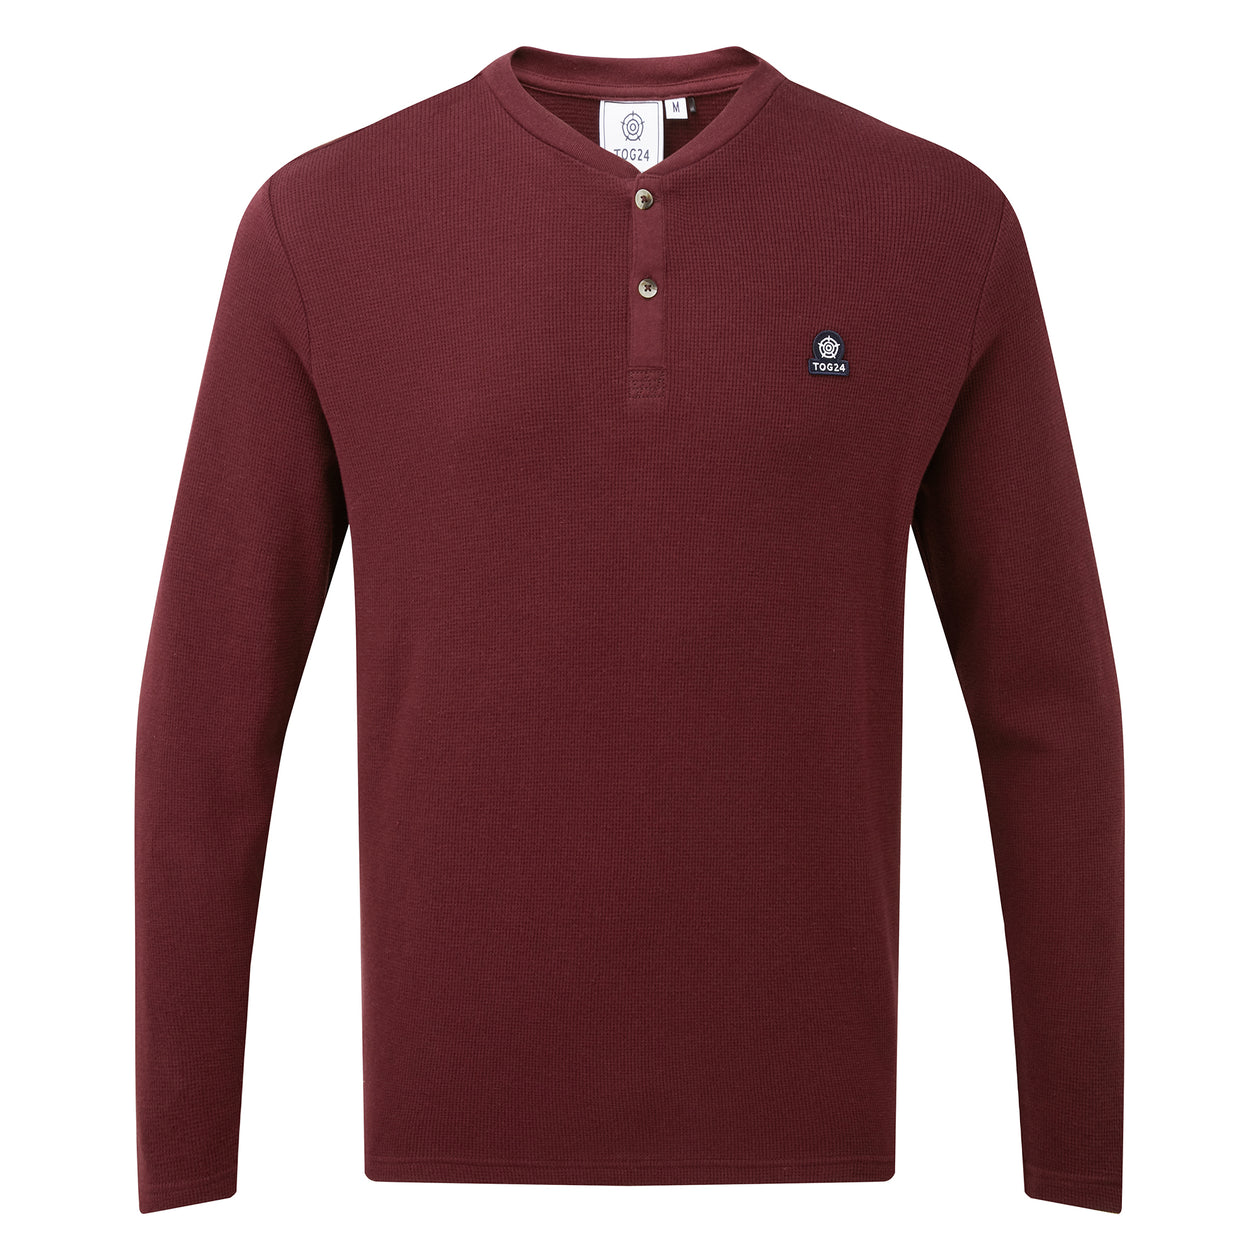 Gowdall Mens Grandad Collar T-Shirt - Deep Port image 4